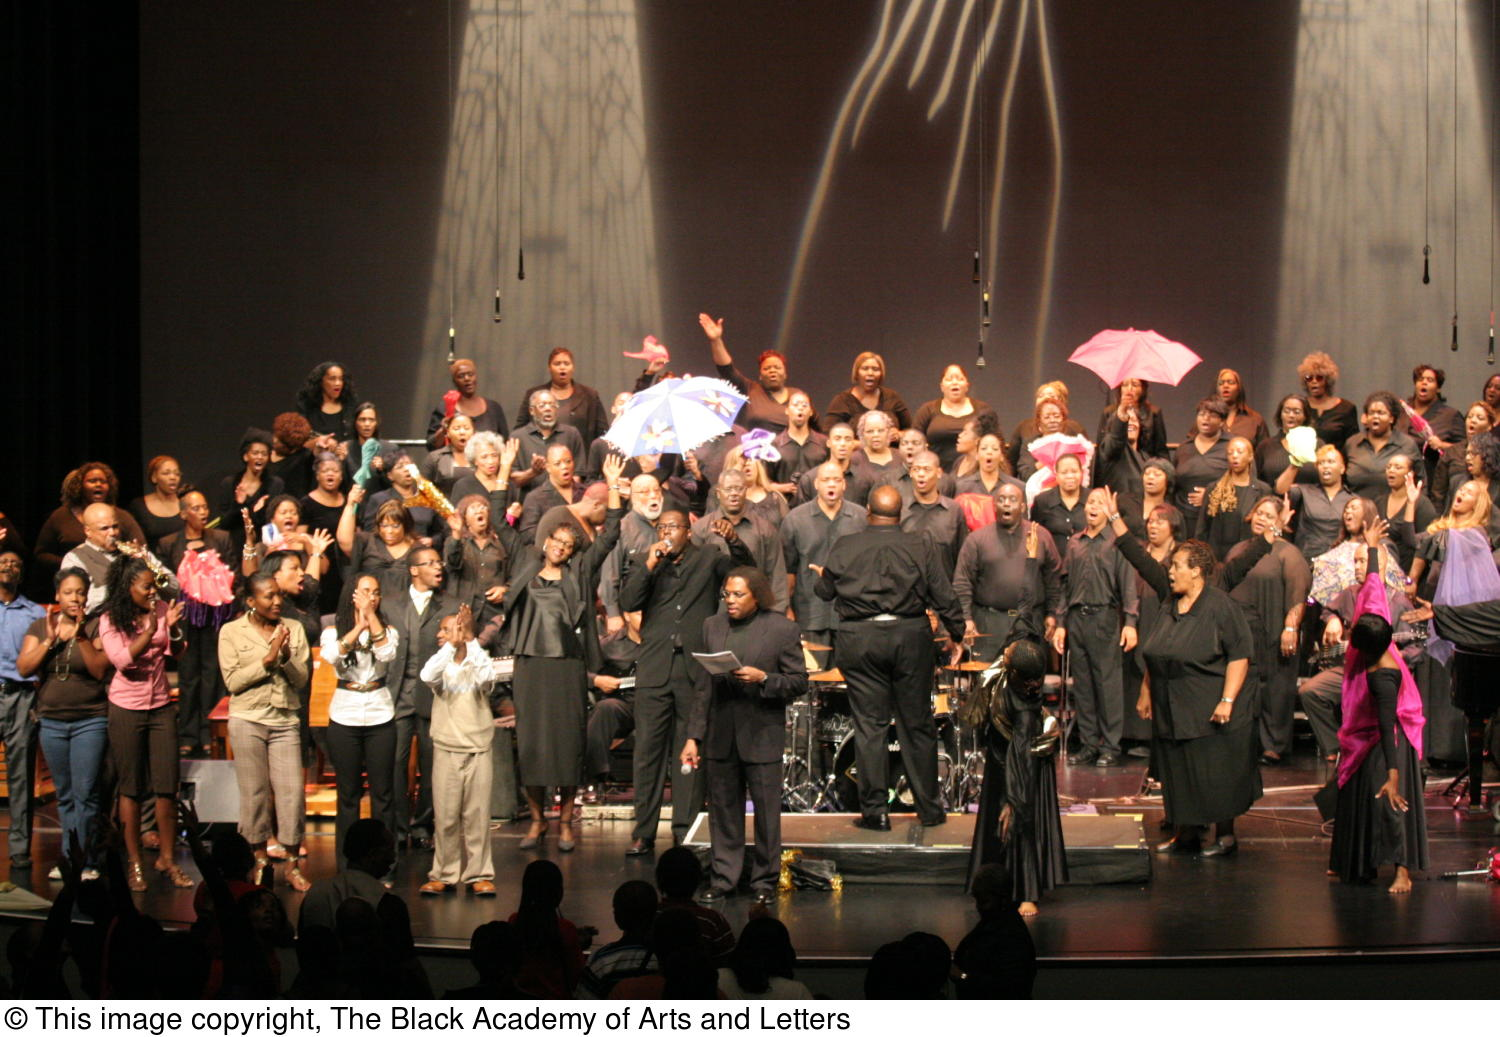 [Curtis King on Stage with Chorus and Performers]                                                                                                      [Sequence #]: 1 of 1